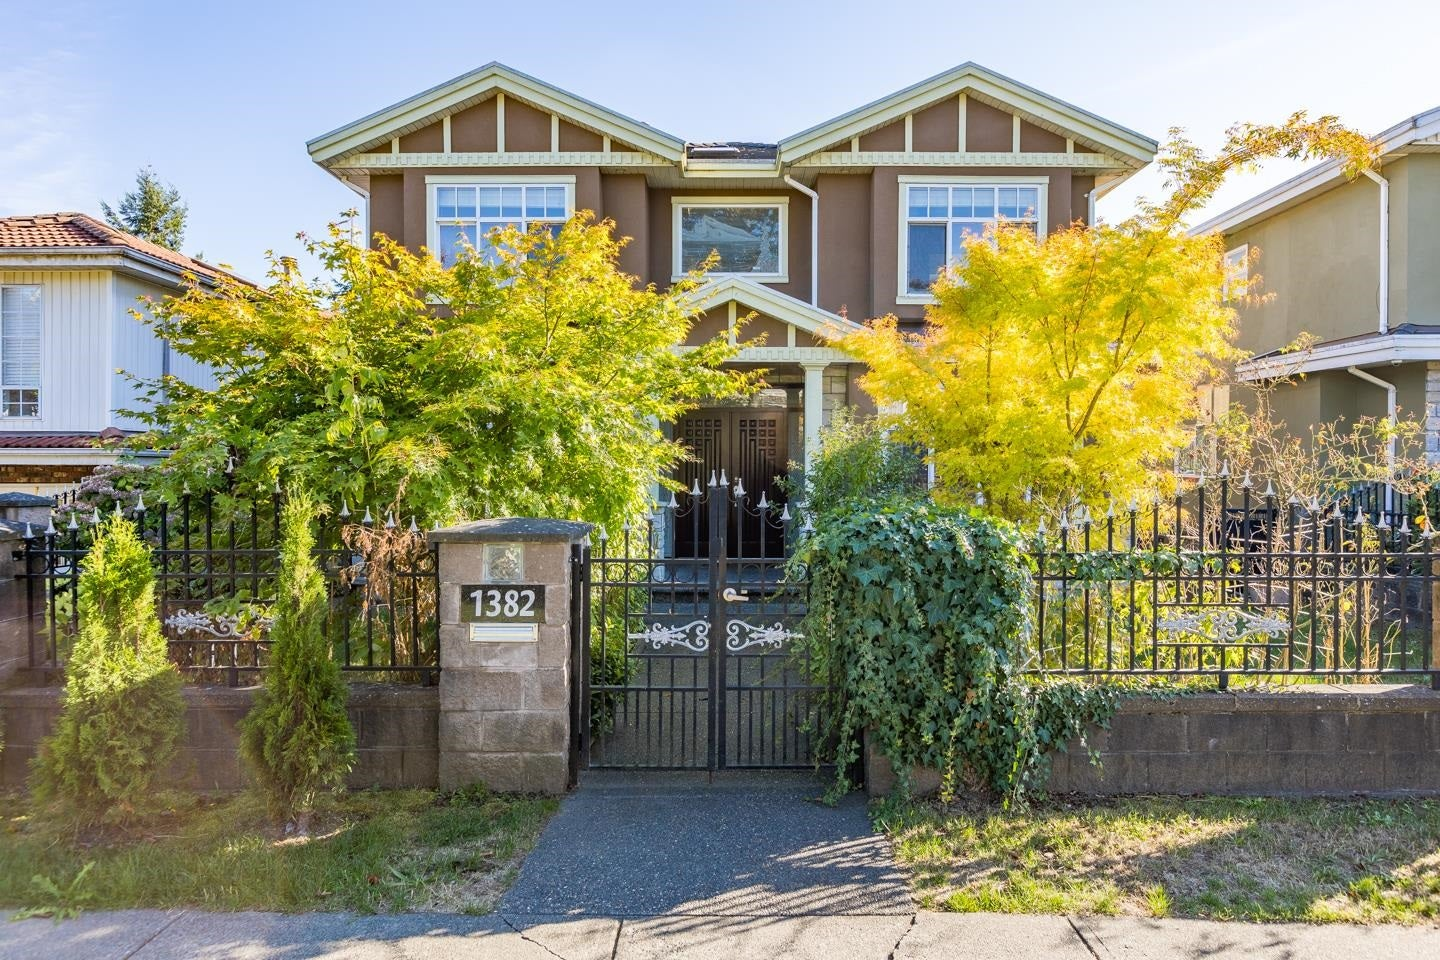 1382 E 61ST AVENUE - South Vancouver House/Single Family for sale, 7 Bedrooms (R2621968) - #1